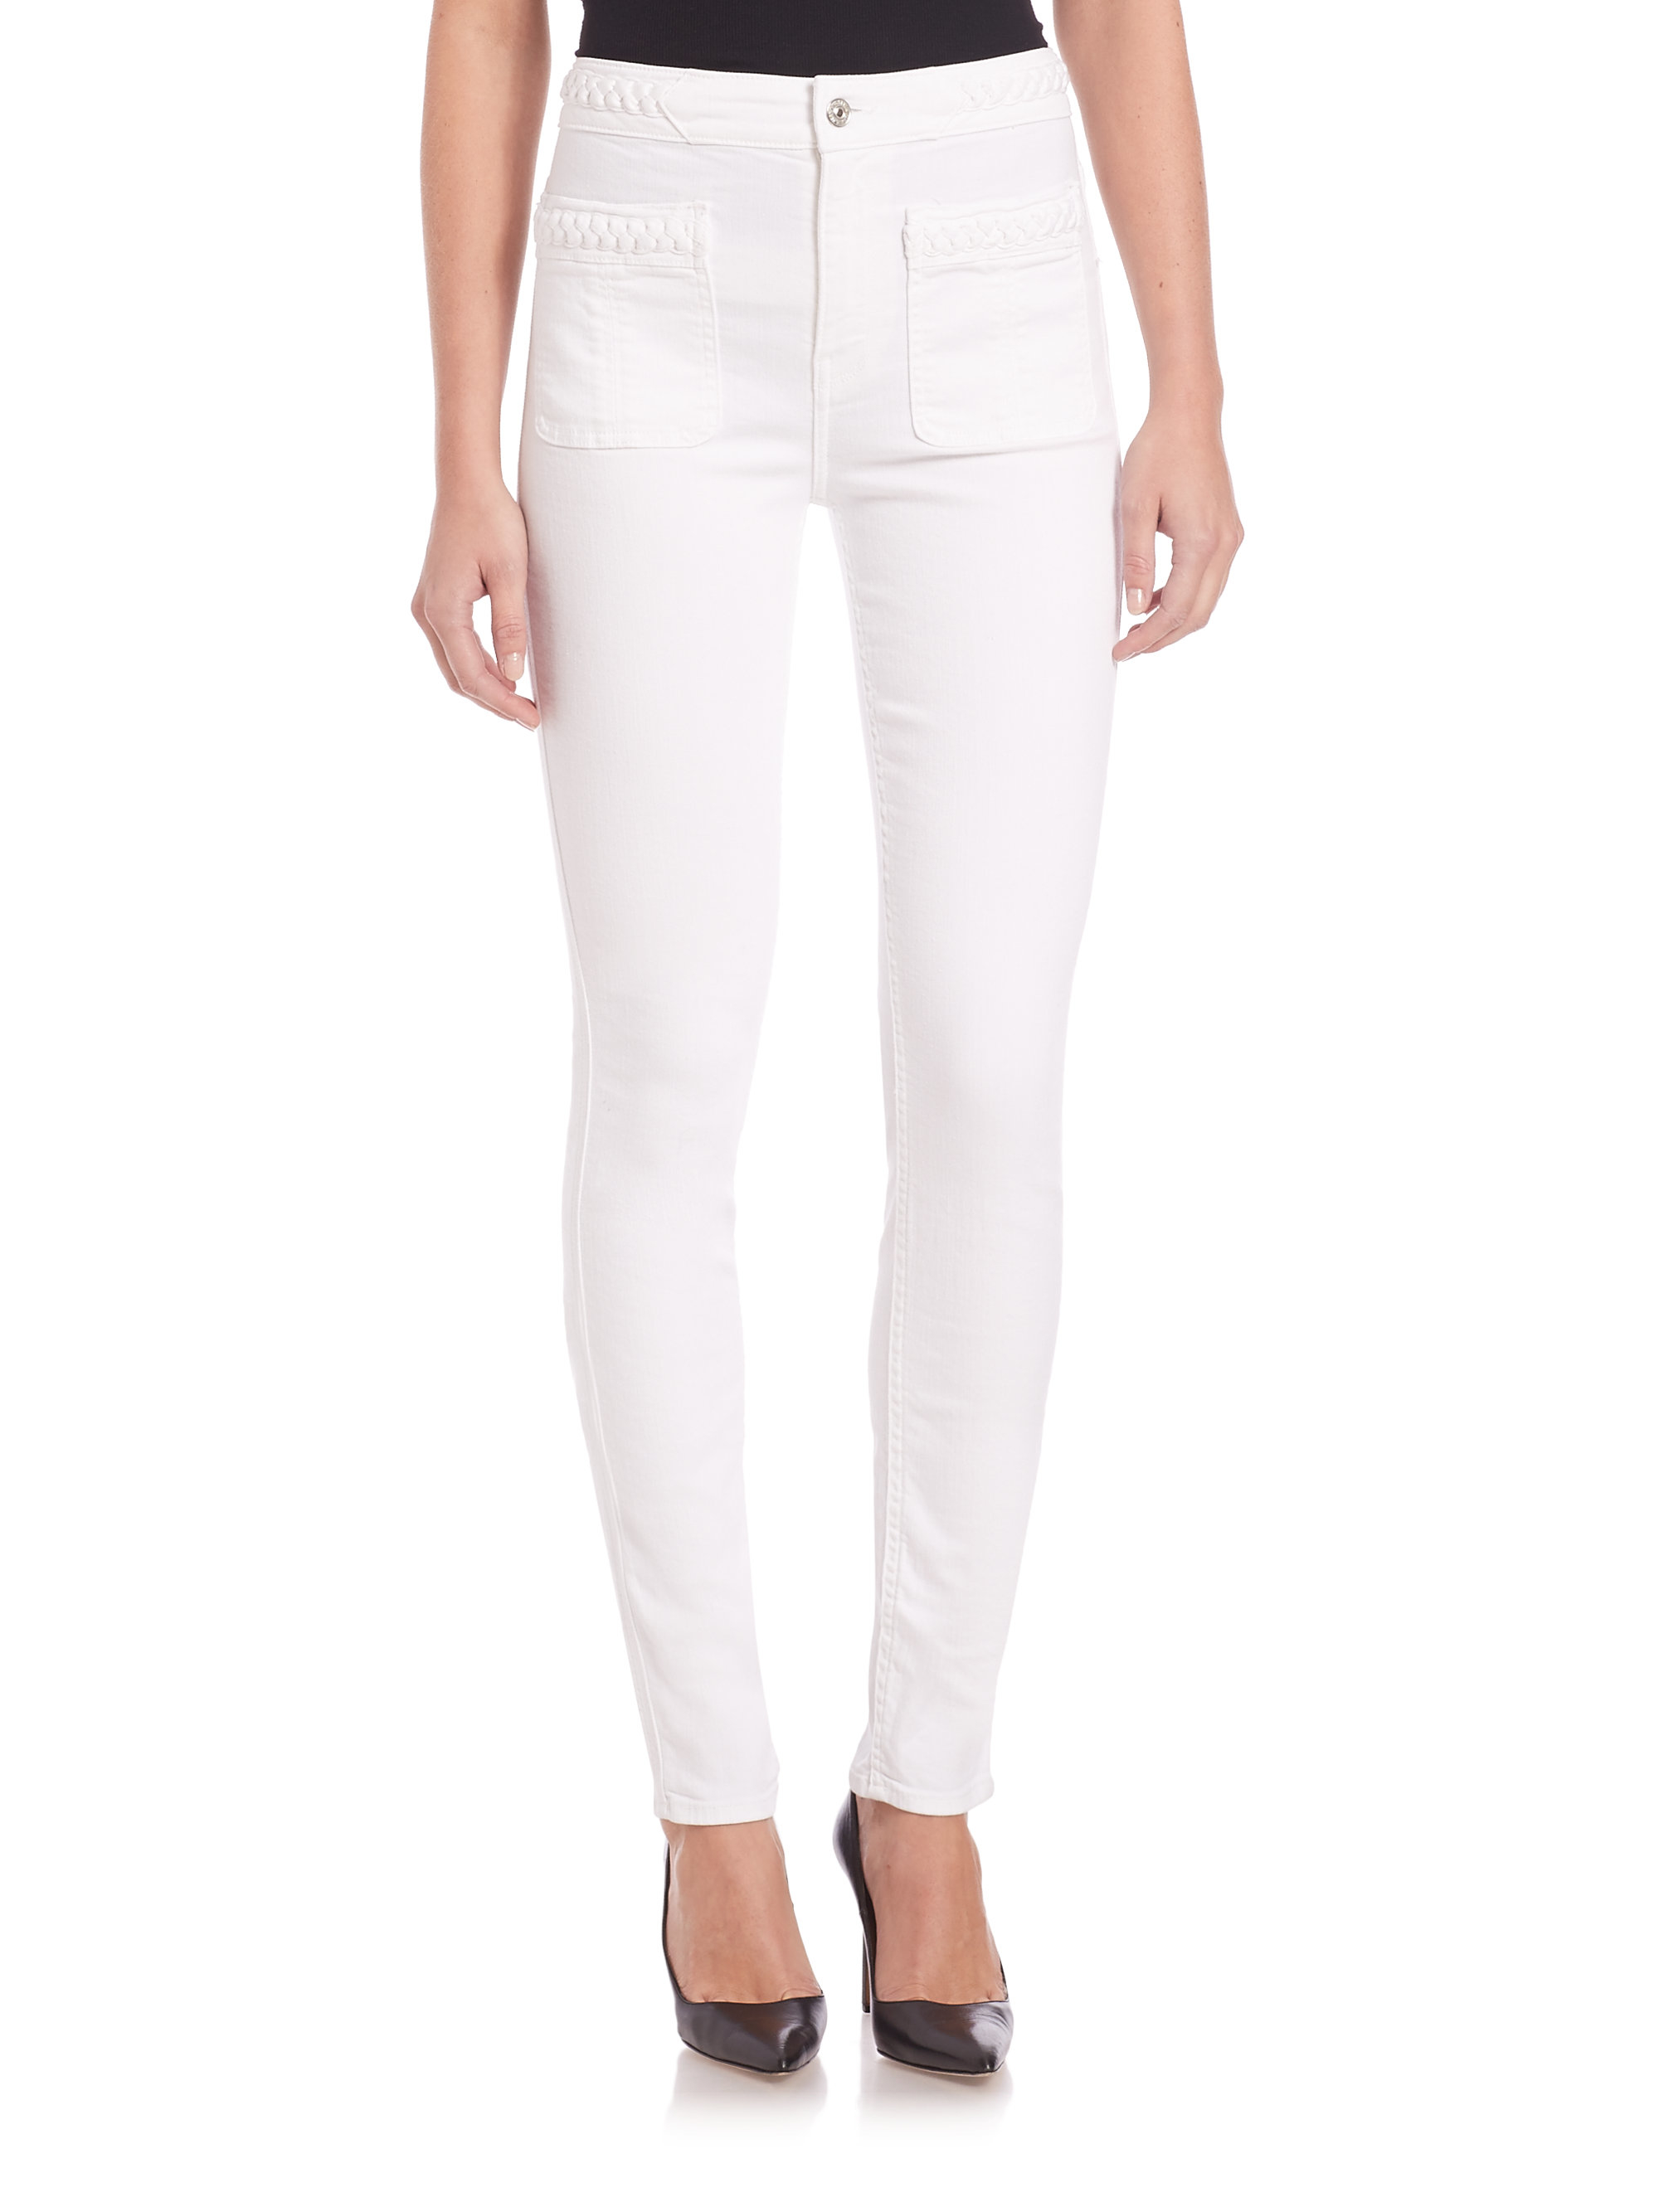 7 for all mankind Braided-trim Skinny Jeans in White | Lyst